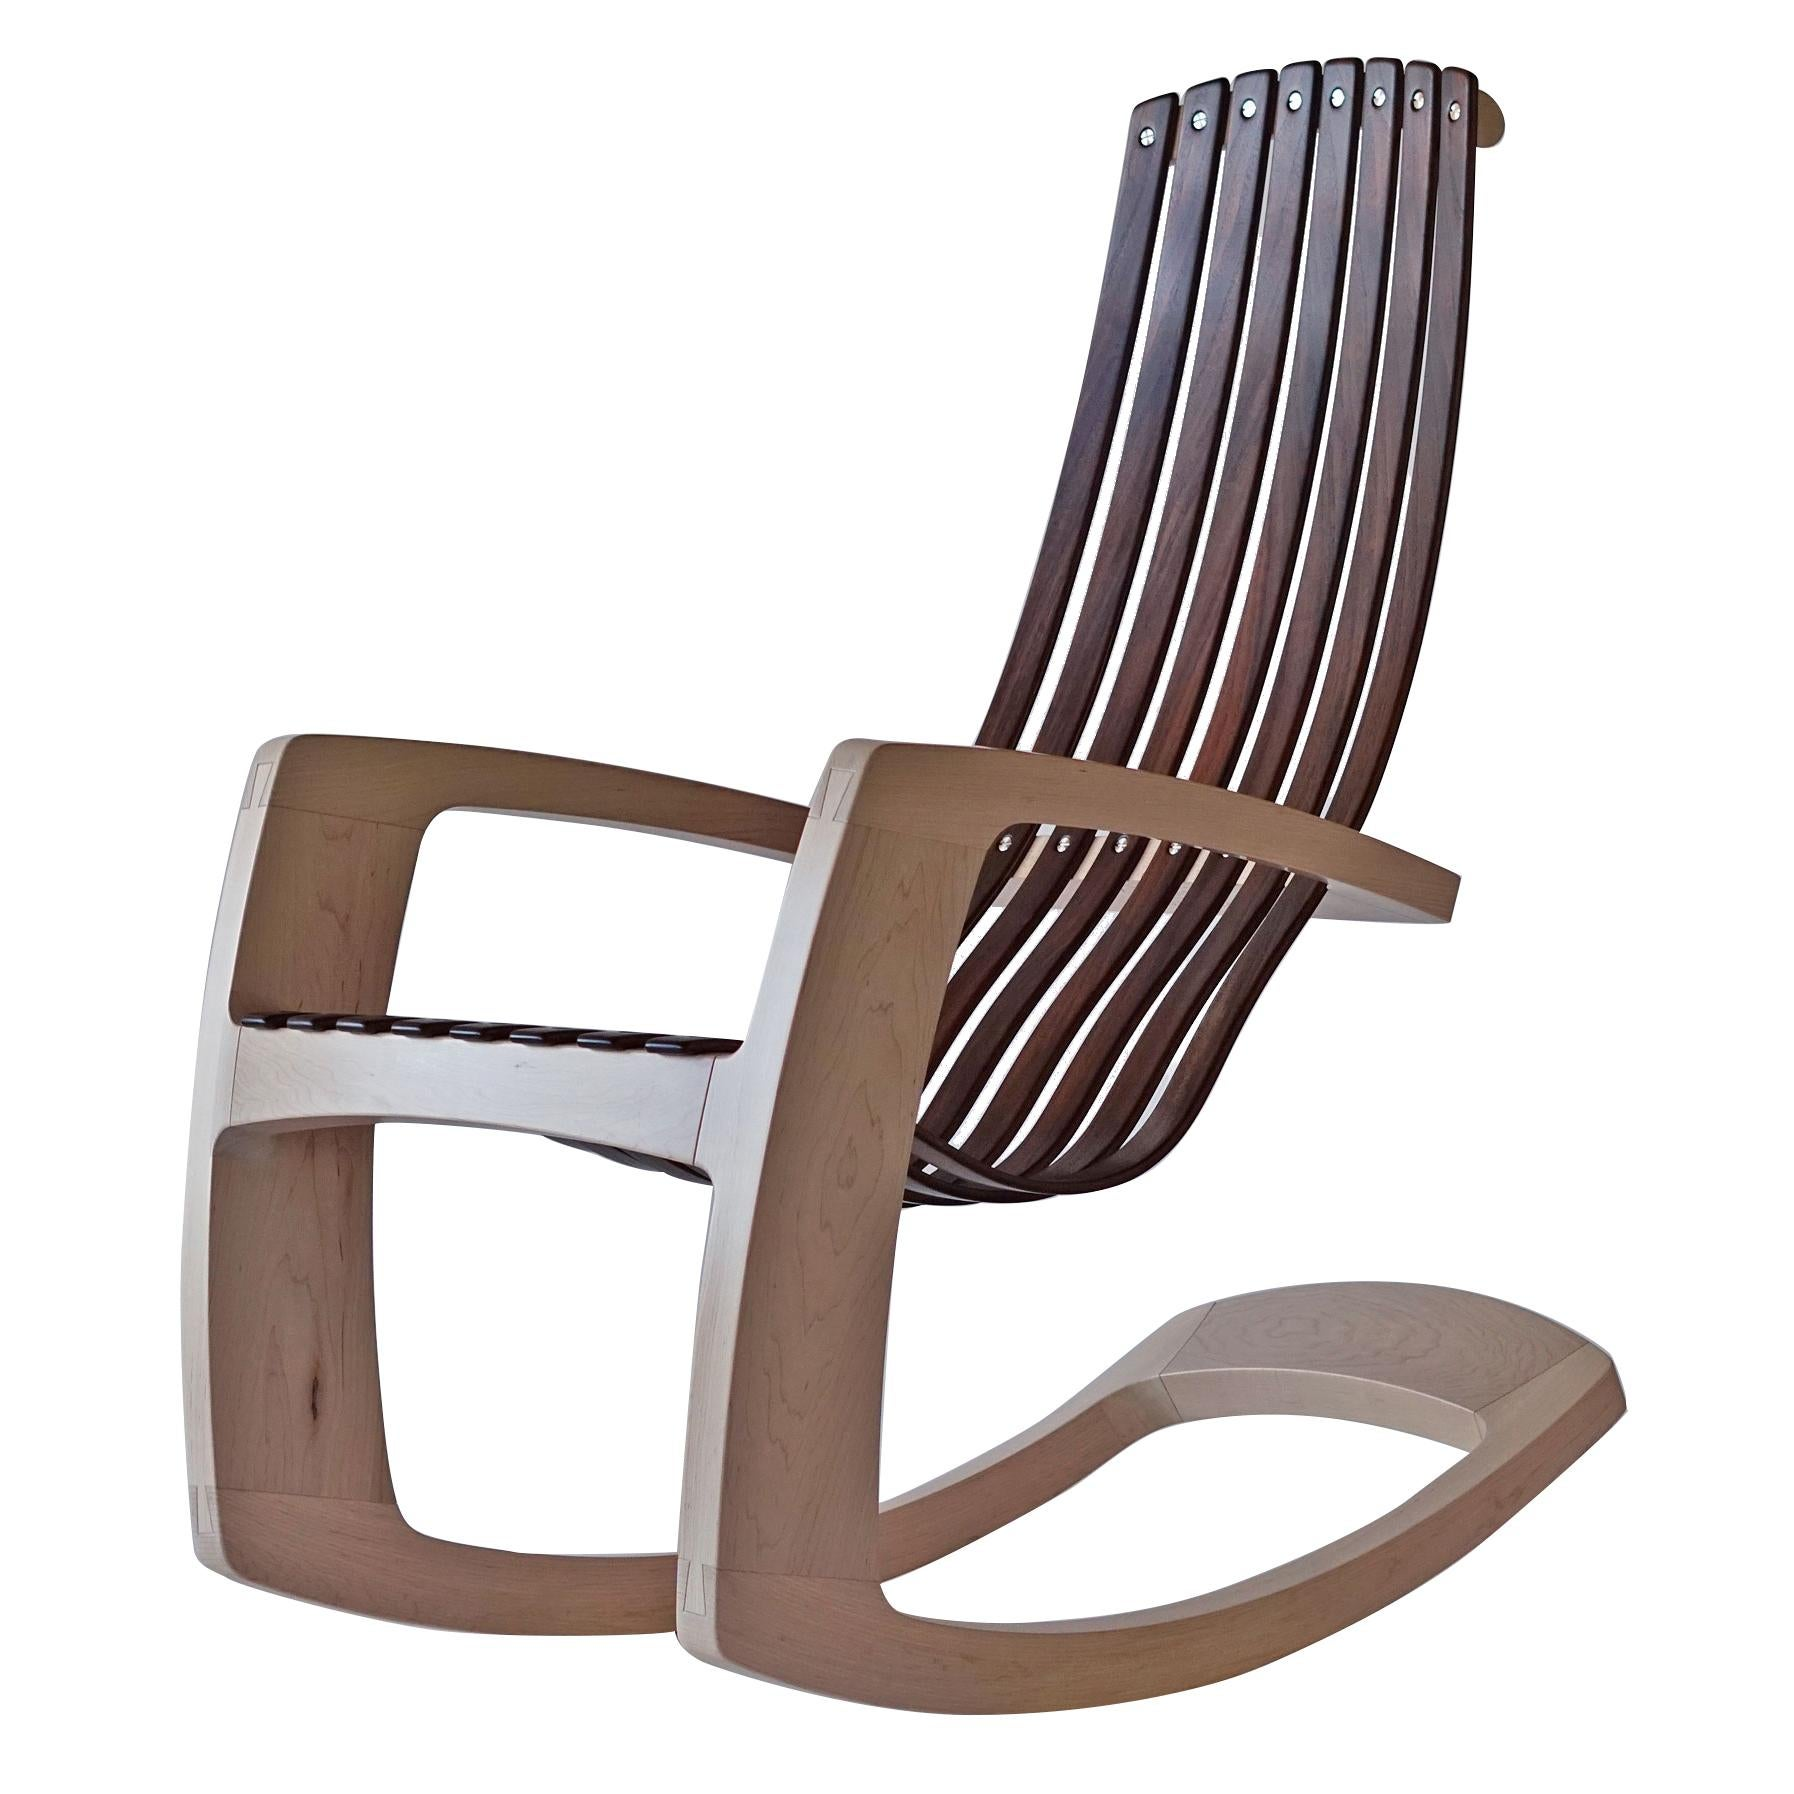 Genial J. Rusten Studio Crafted Sculptural Modern Rocking Chair In Maple And Walnut